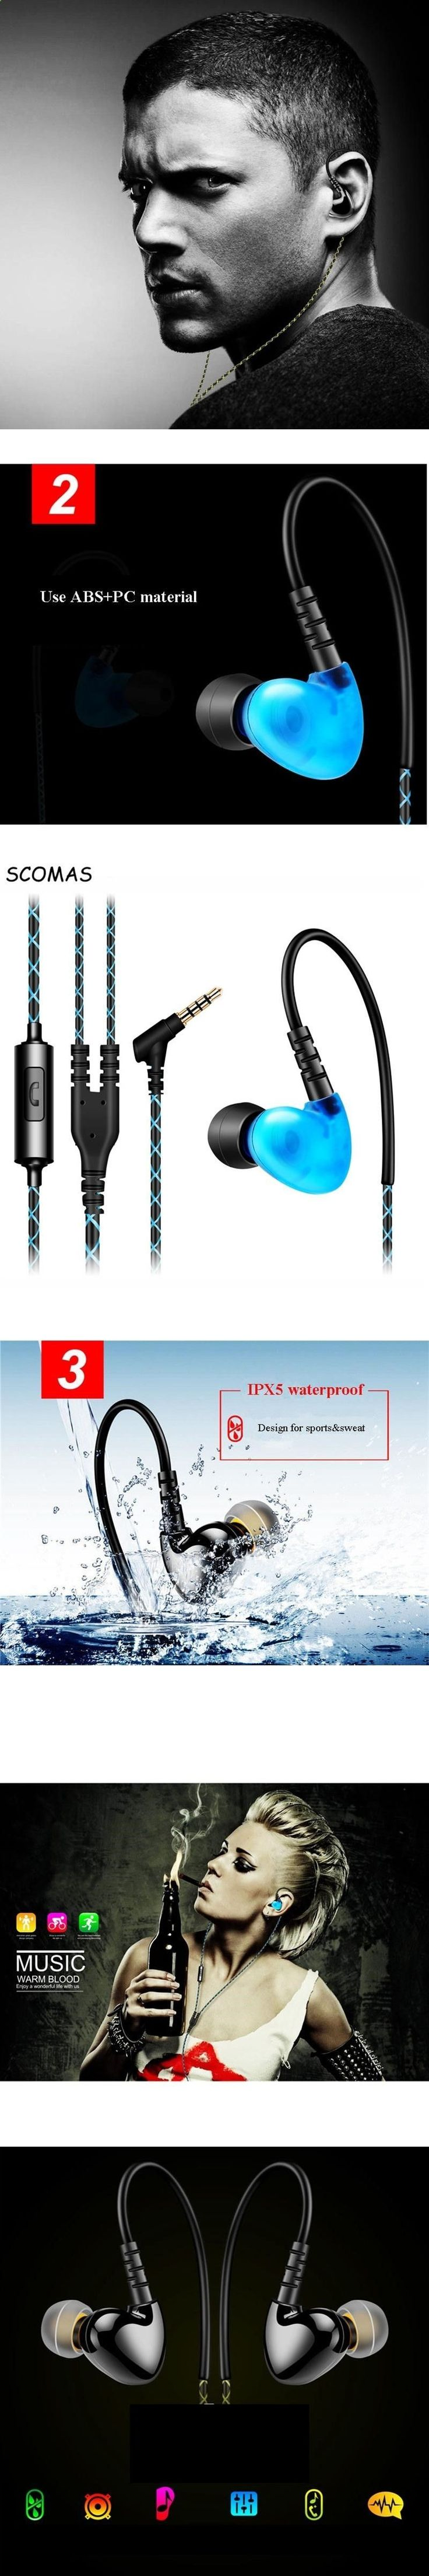 Sports Headphones - Sports Headphones - SCOMAS Noise Isolating Sweatproof Sport Headphones Earbuds Earphones with Mic Earhook Wired Stereo Earpods for MOBILE PHONE - If you usually go out to run, walk or any other sport in which you usually carry music to accompany or motivate you, we have selected 13 models of sports headphones that we consider among the best in the market for different aspects, from comfort to use to design, sound quality or value for money, so that you find variety ...